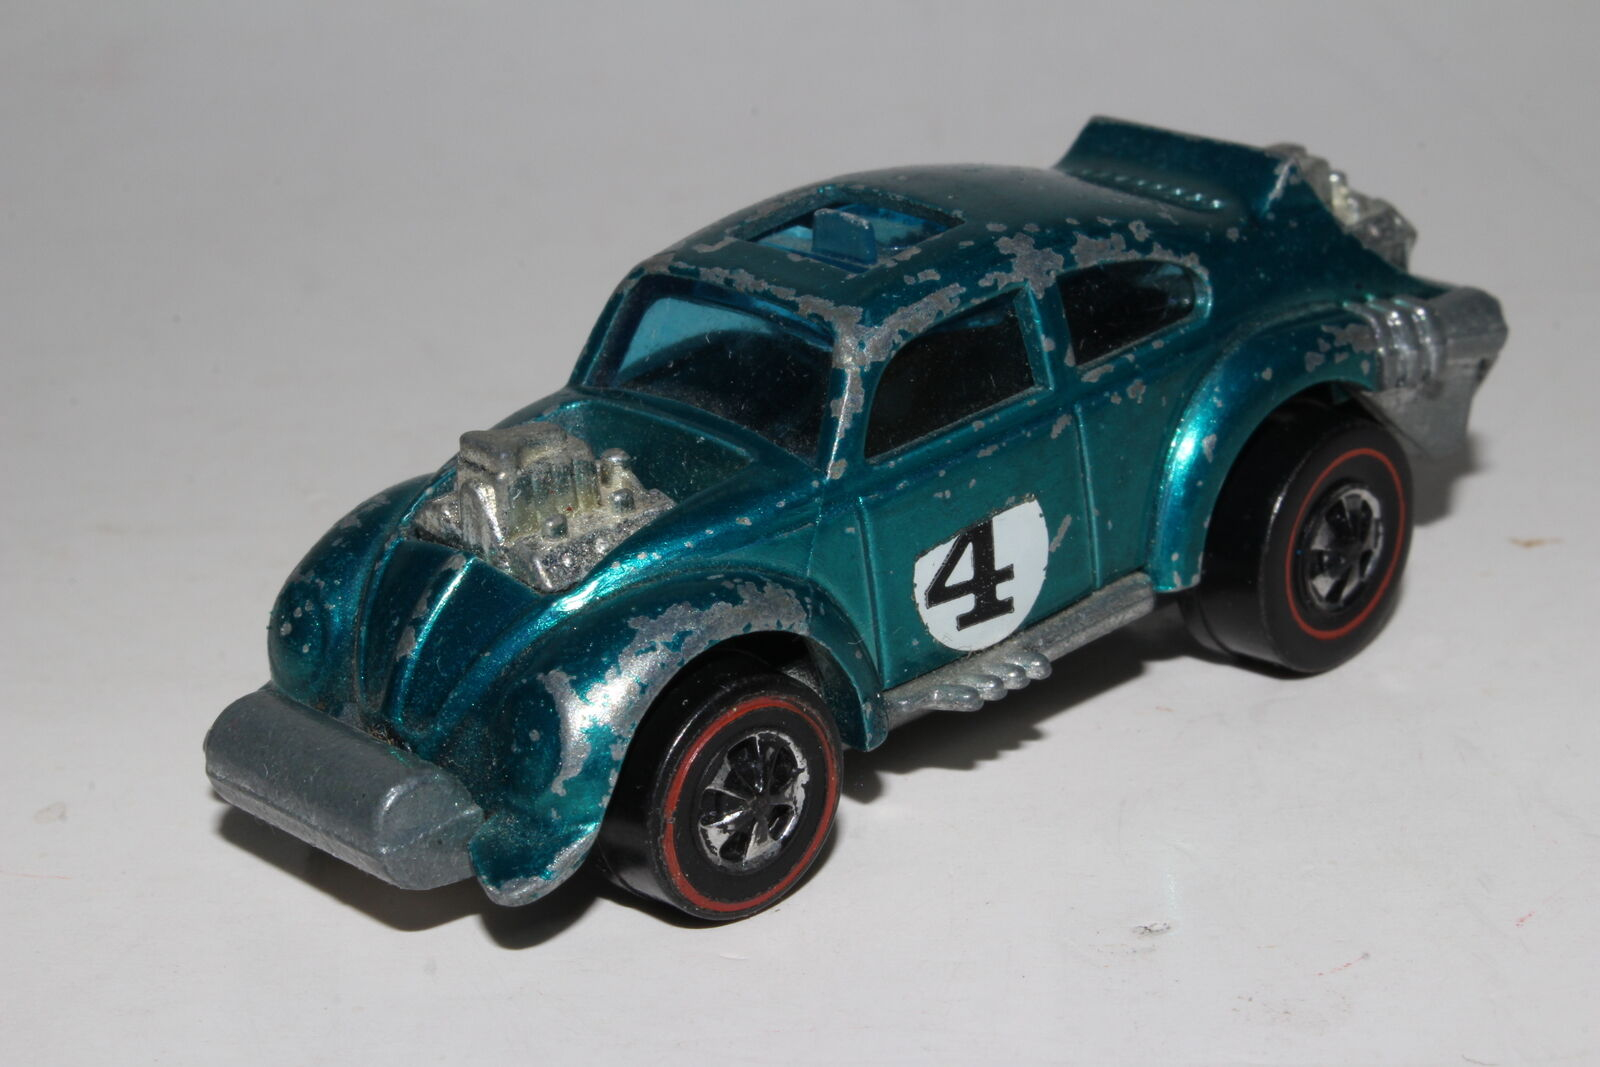 HOT WHEELS REDLINE EVIL WEEVIL, METALLIC AQUA, HONG KONG, ORIGINAL